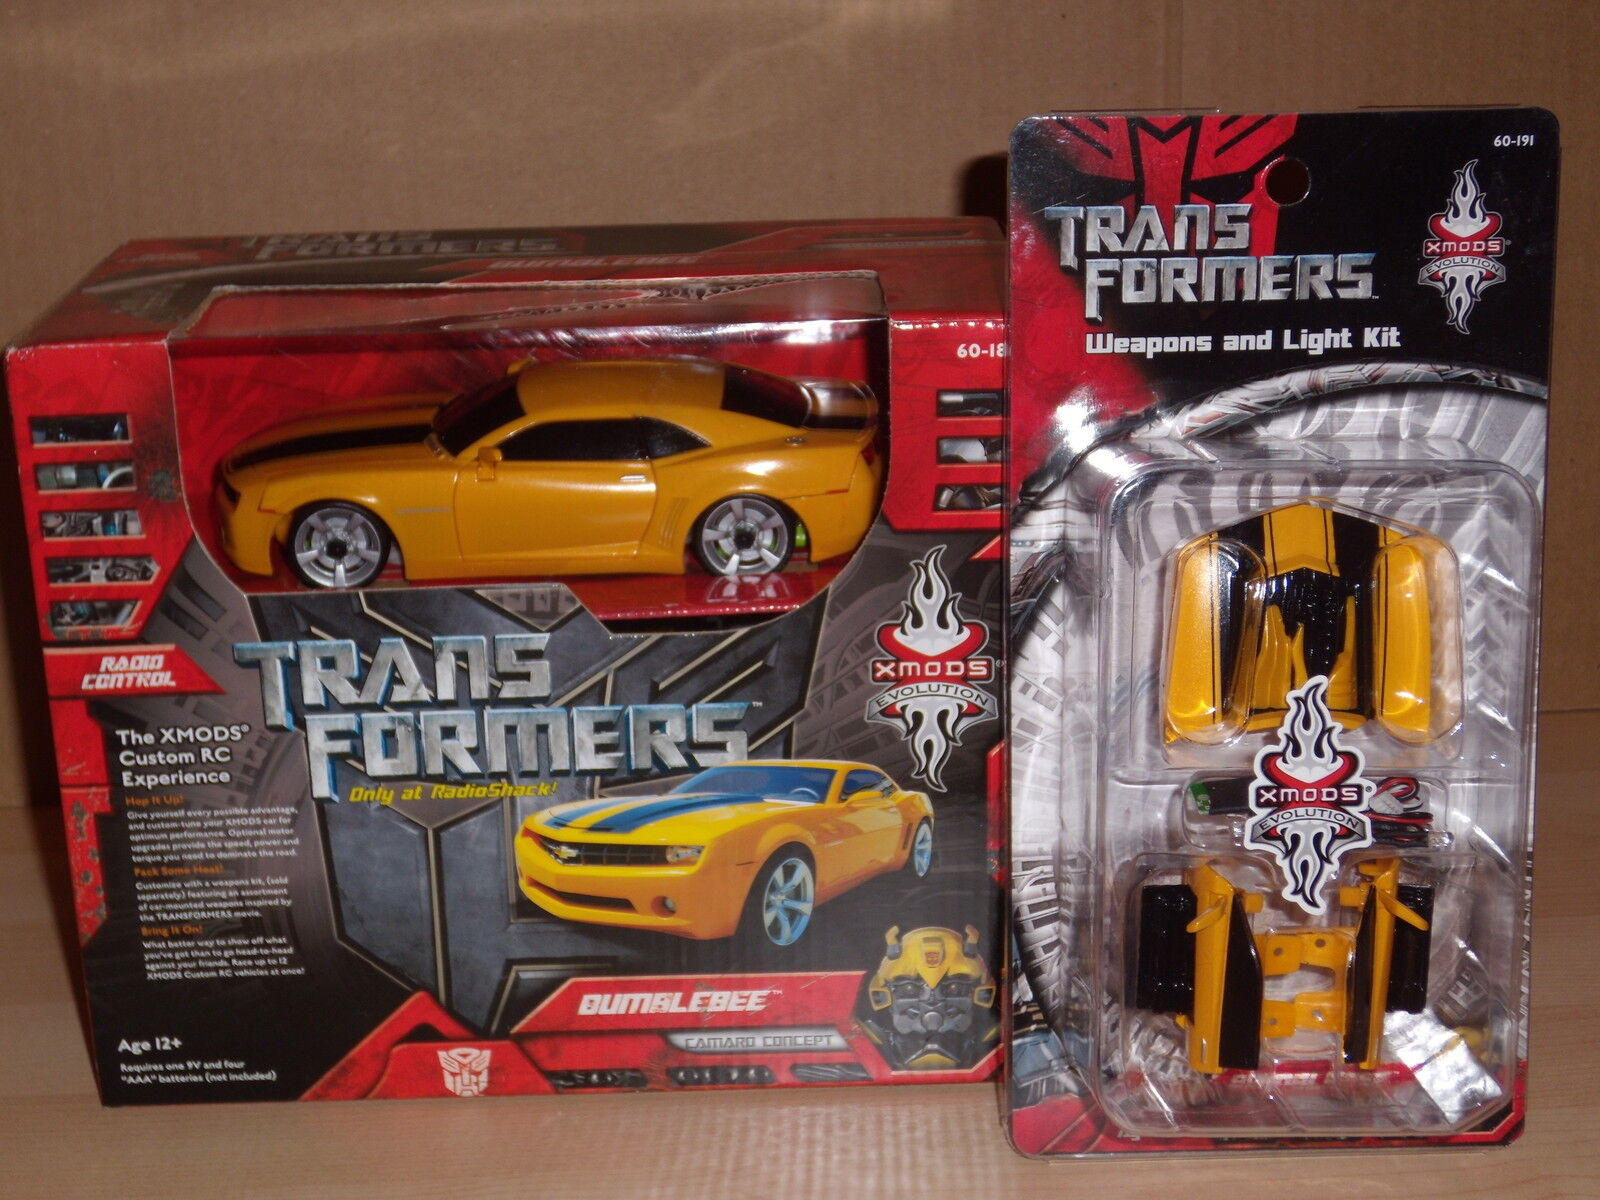 XMODS Evolution Transformers Bumblebee RC Radio Control Kit Movie 2007